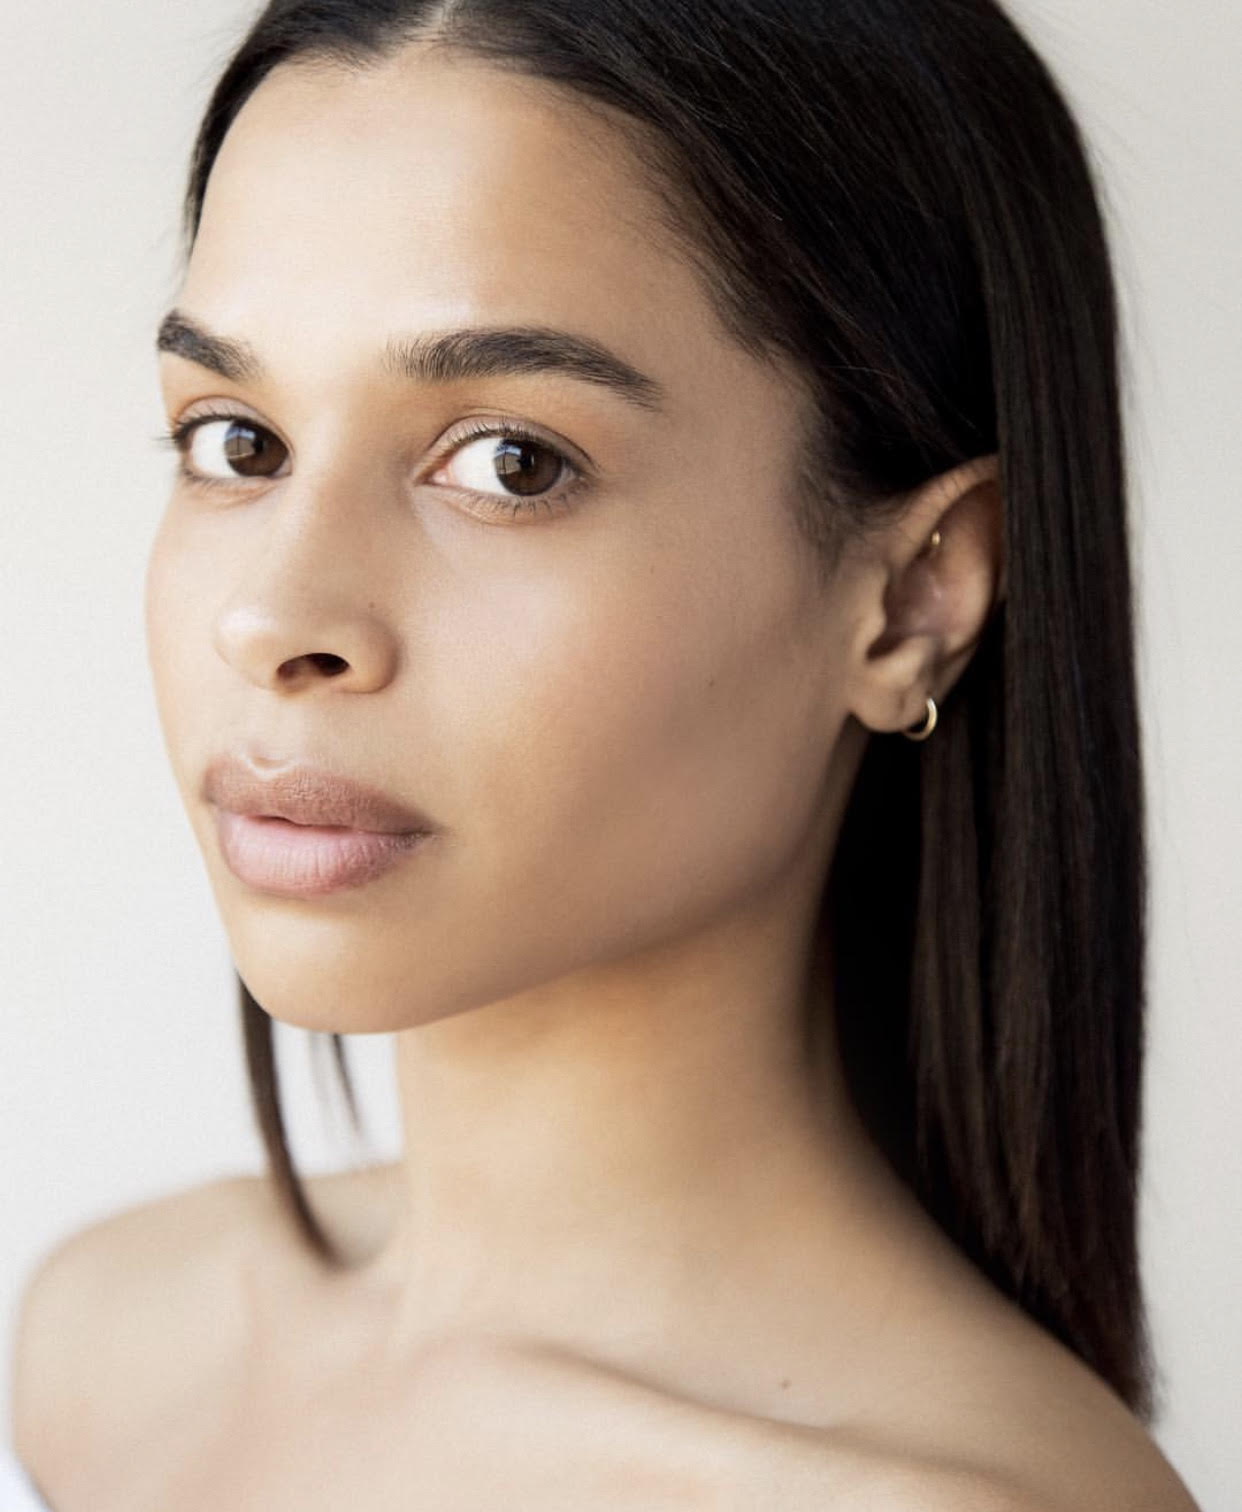 Jordyn is repped by WME - GENERAL INQUIRIES:mgmt@jordynrolling.com